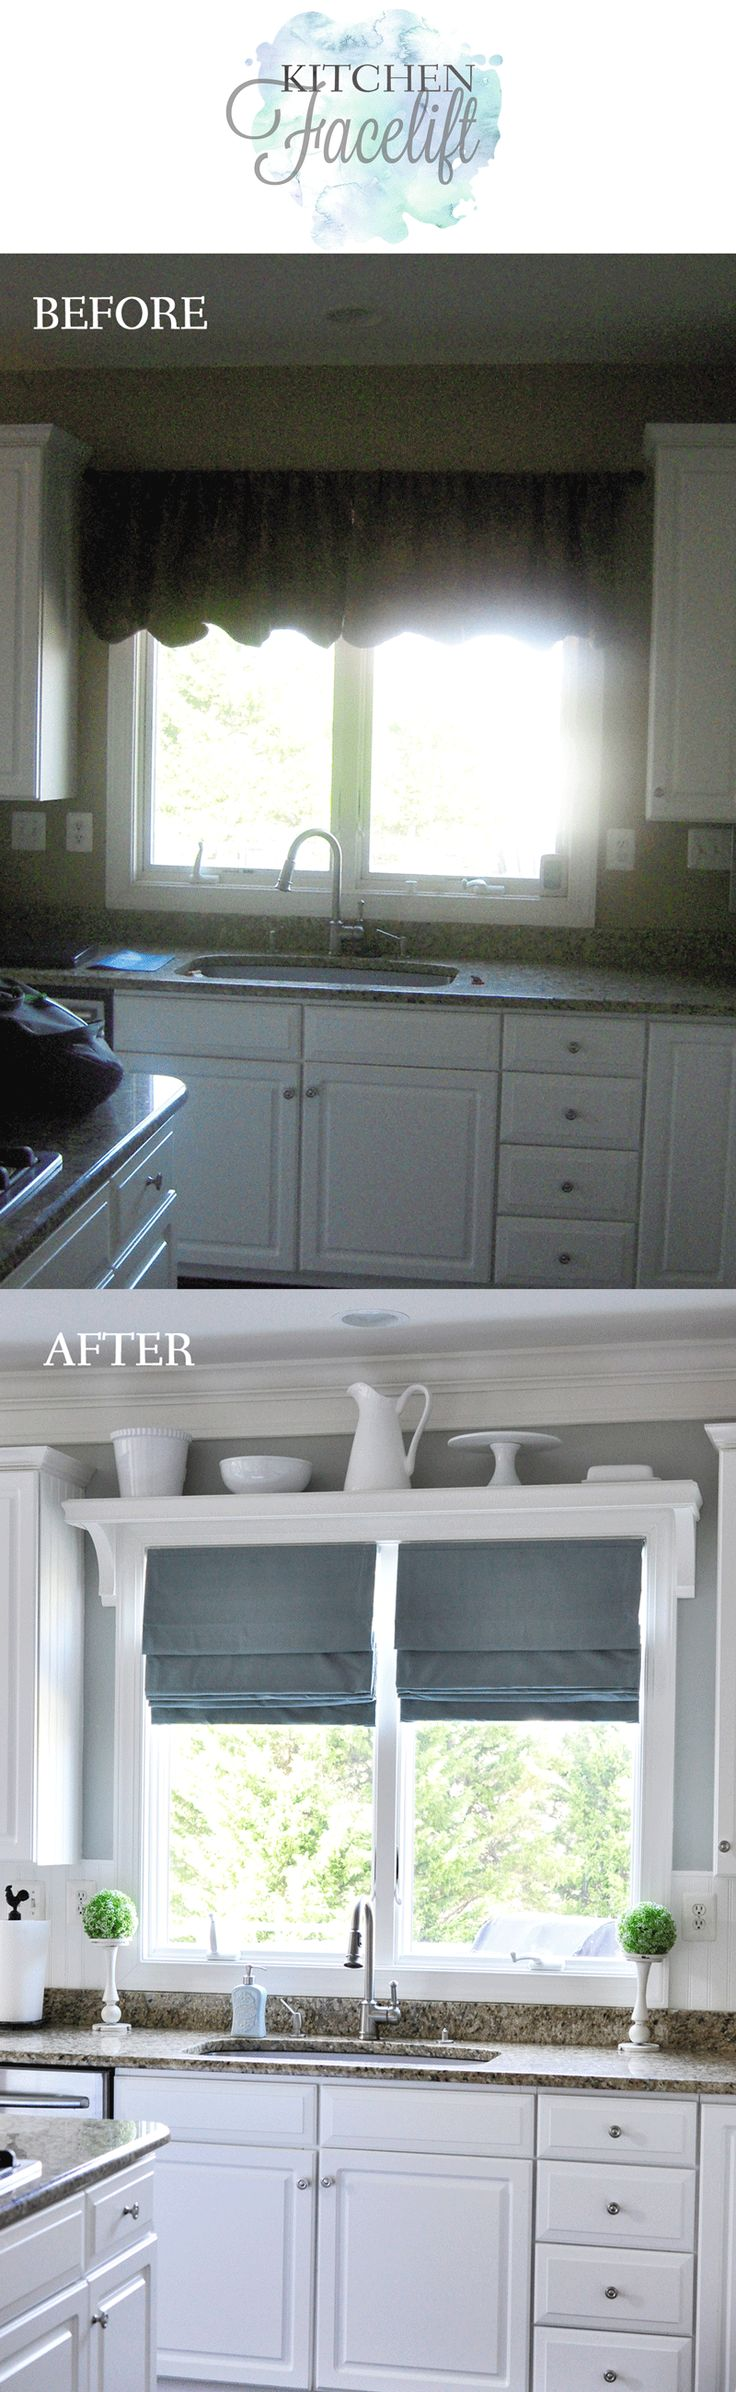 Beautiful kitchen facelift! When you want an update but don't need a full renovation, just a few small finishing touches and details.